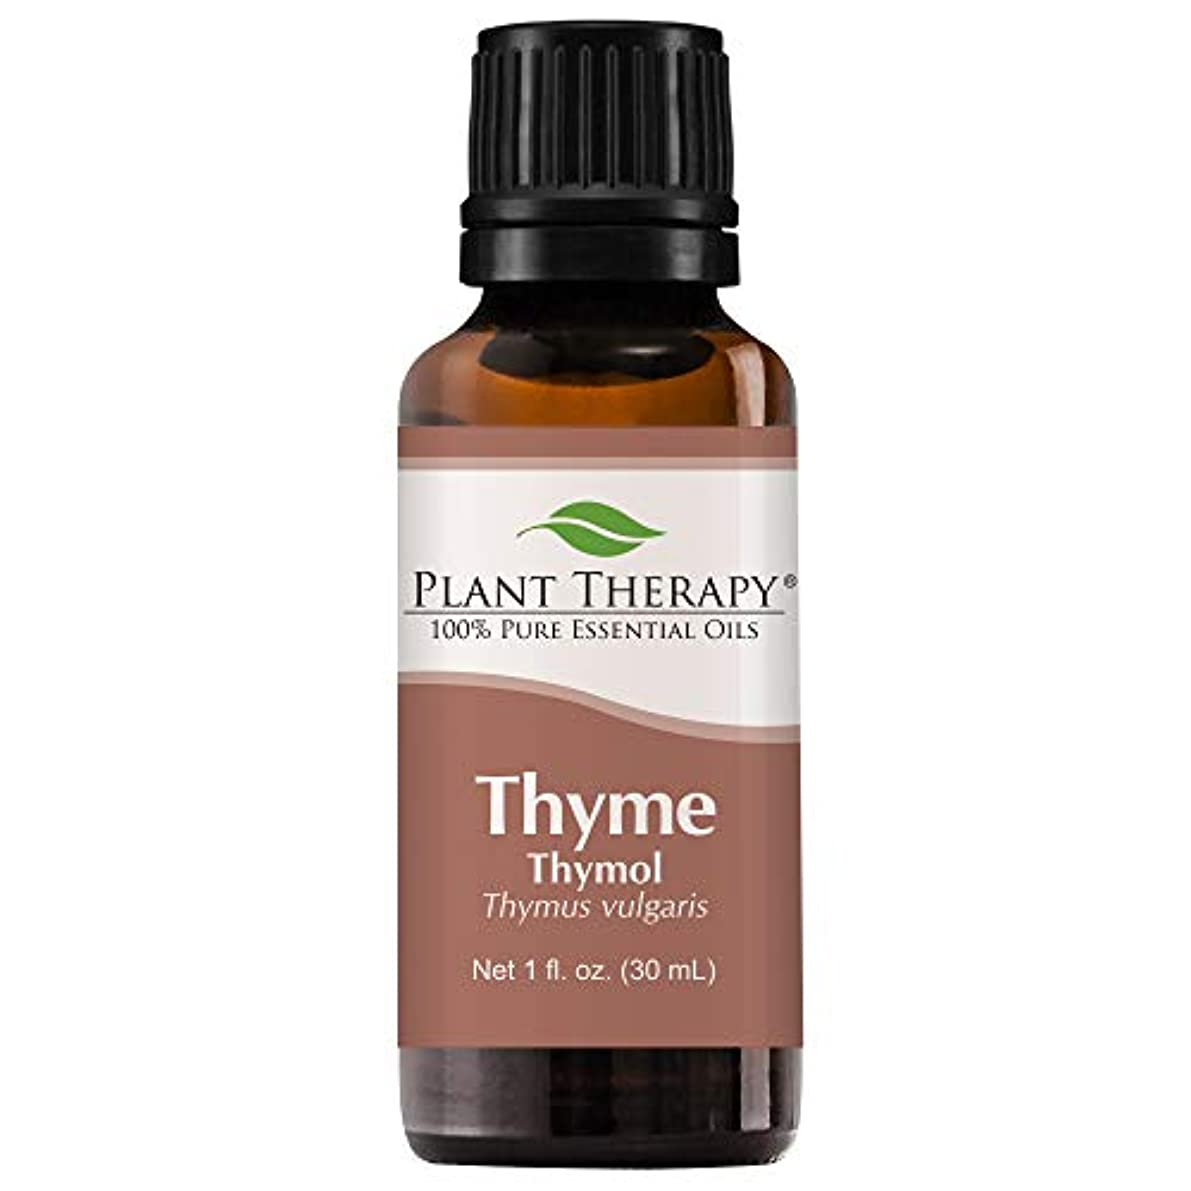 遺伝的シリアル寛大なPlant Therapy Thyme Thymol Essential Oil. 100% Pure, Undiluted, Therapeutic Grade. 30 ml (1 oz). by Plant Therapy...